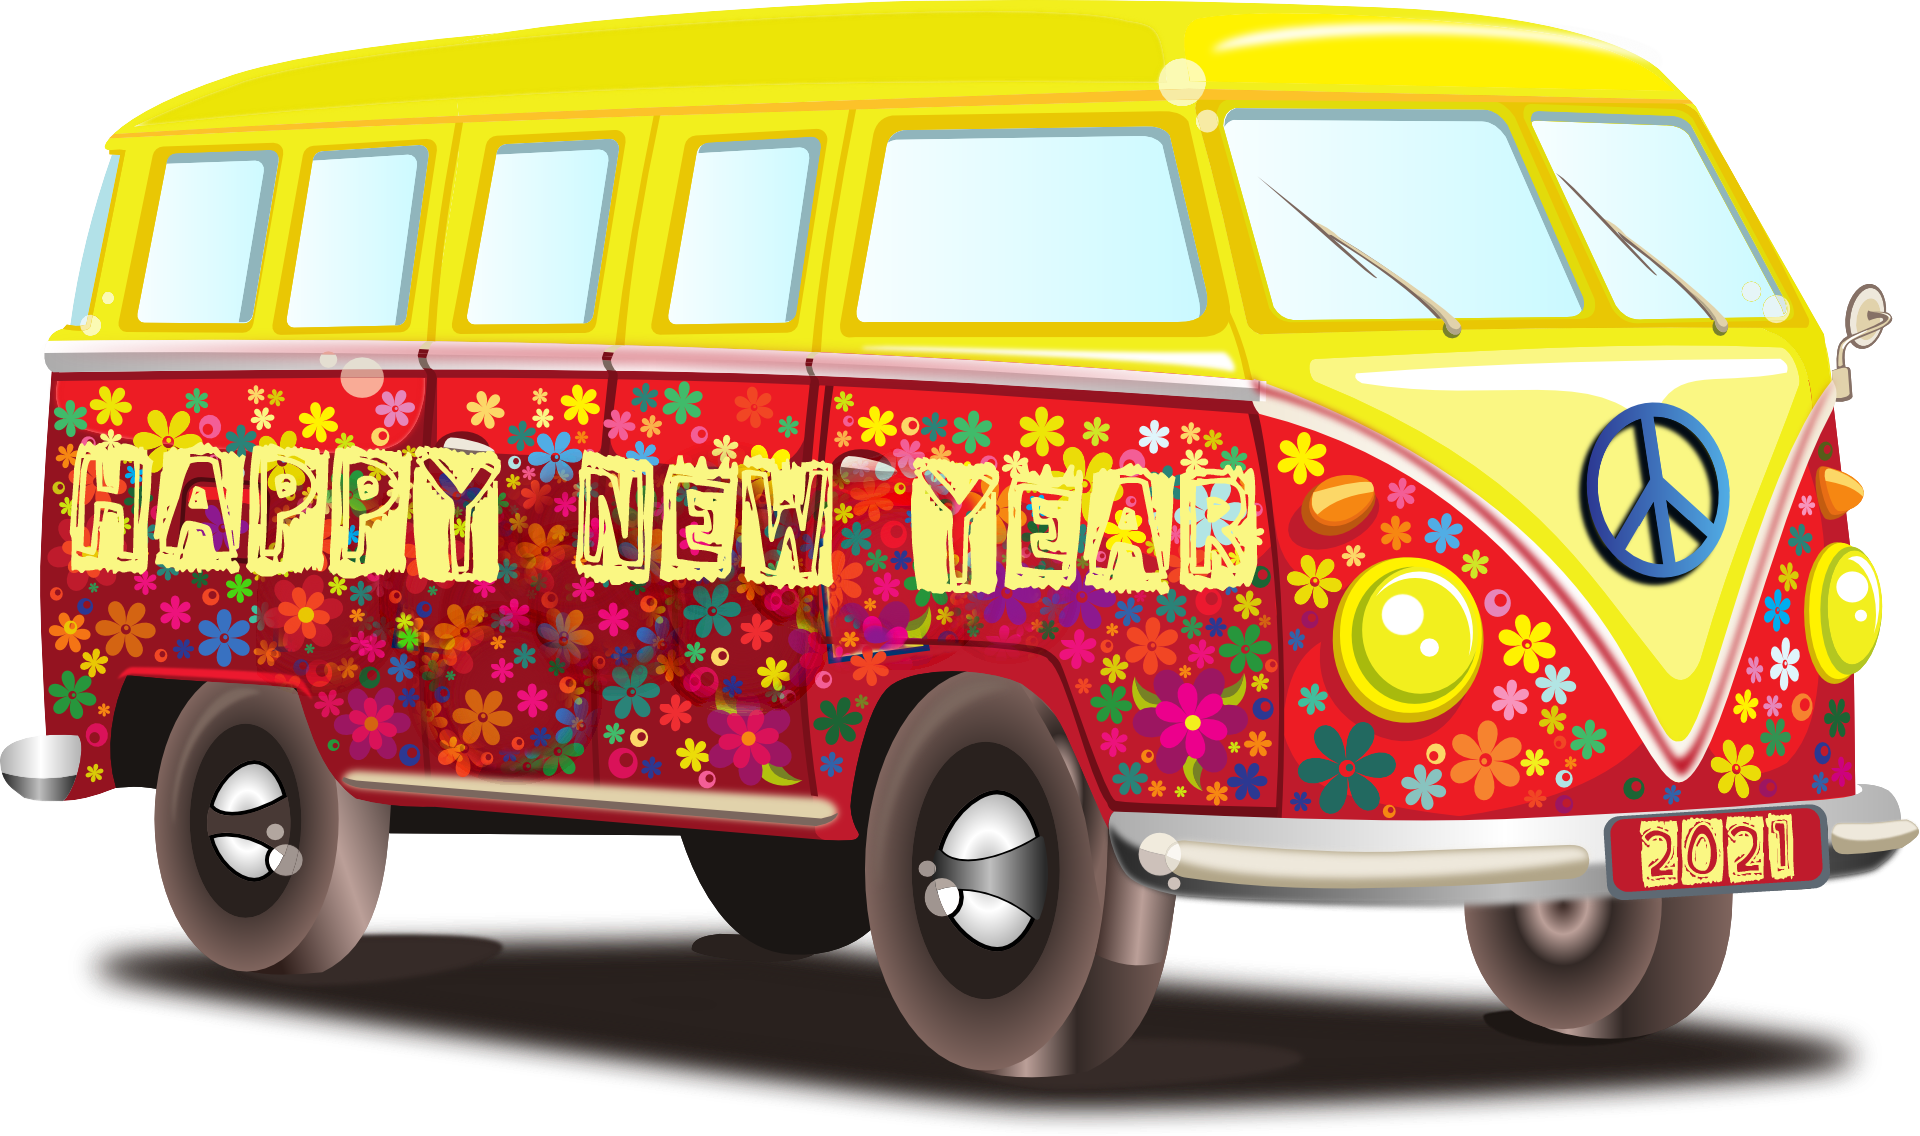 Have a Groovy New Year